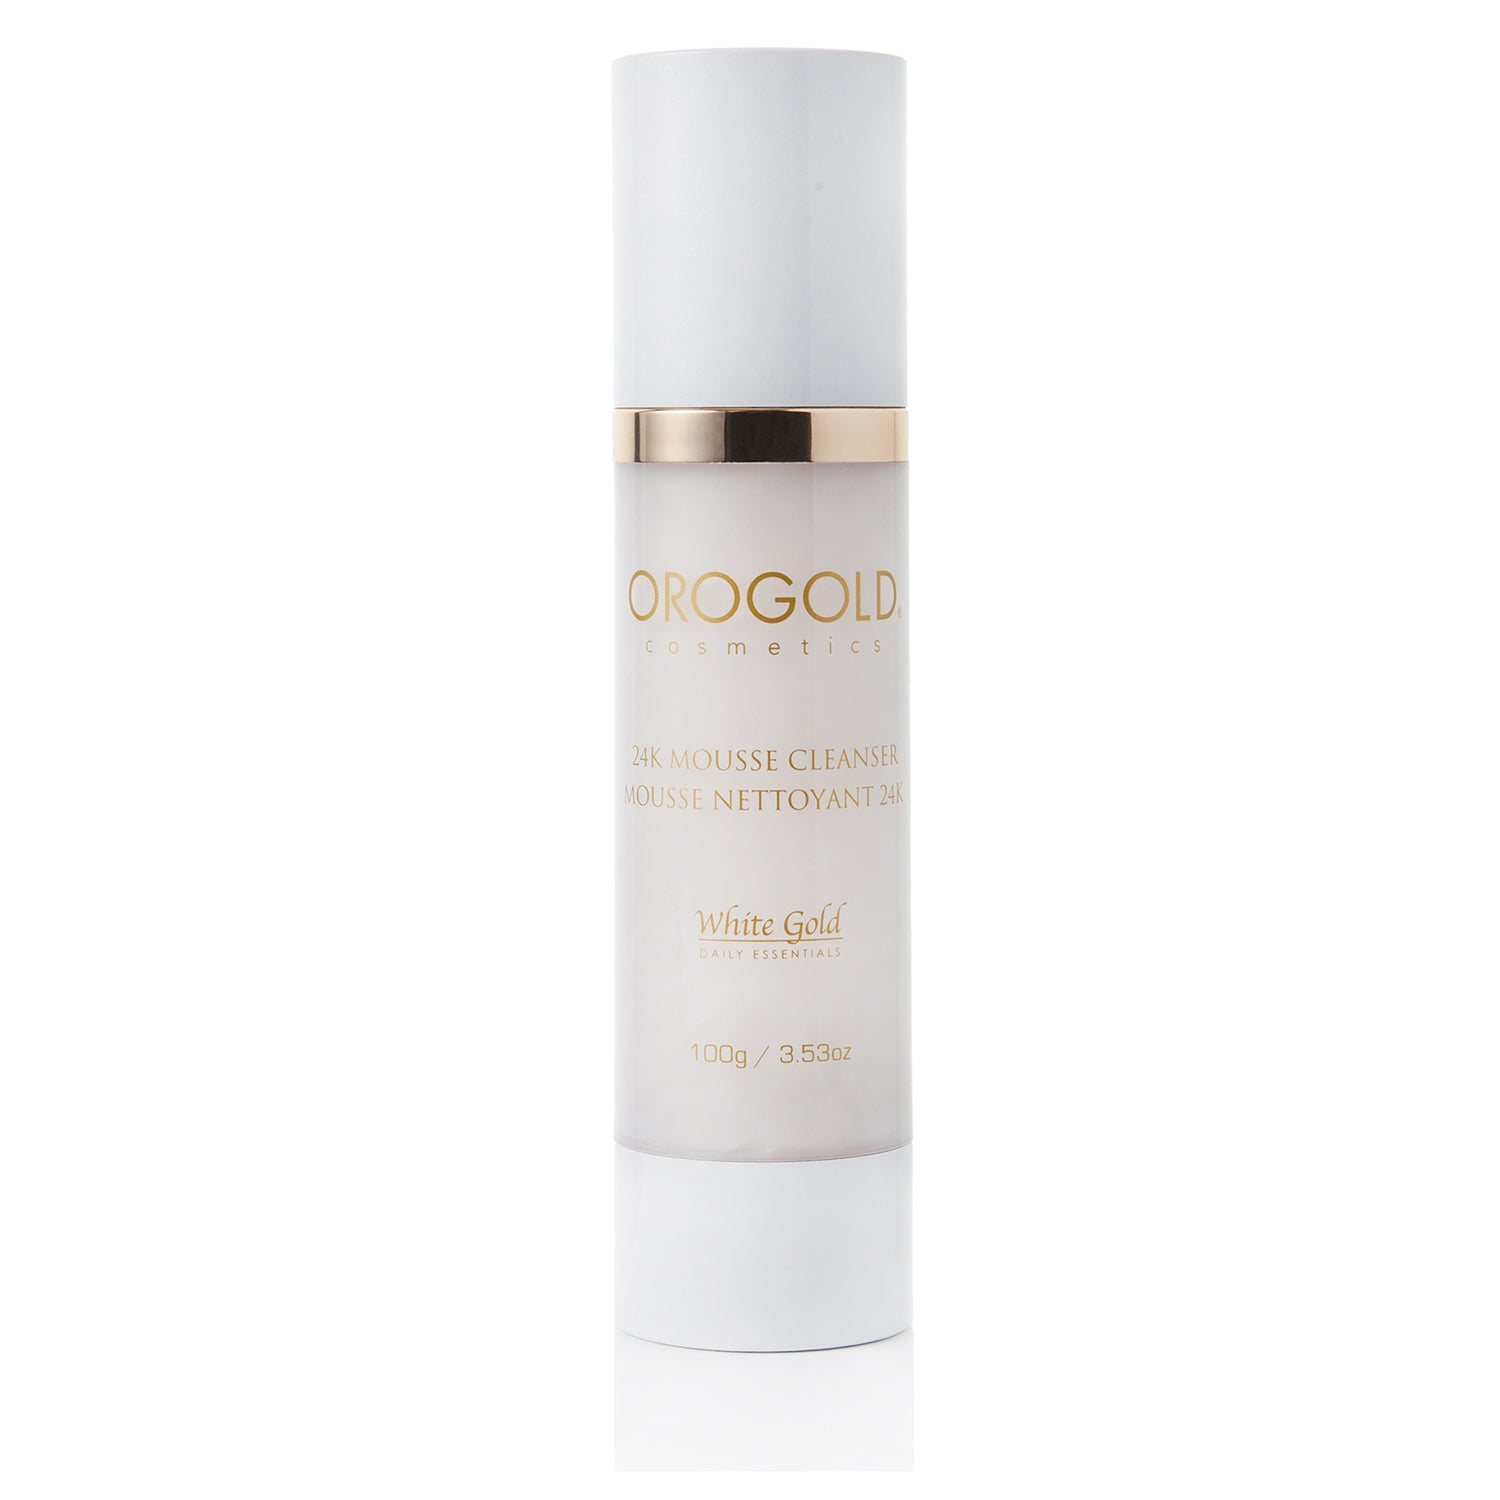 orogold mousse cleanser